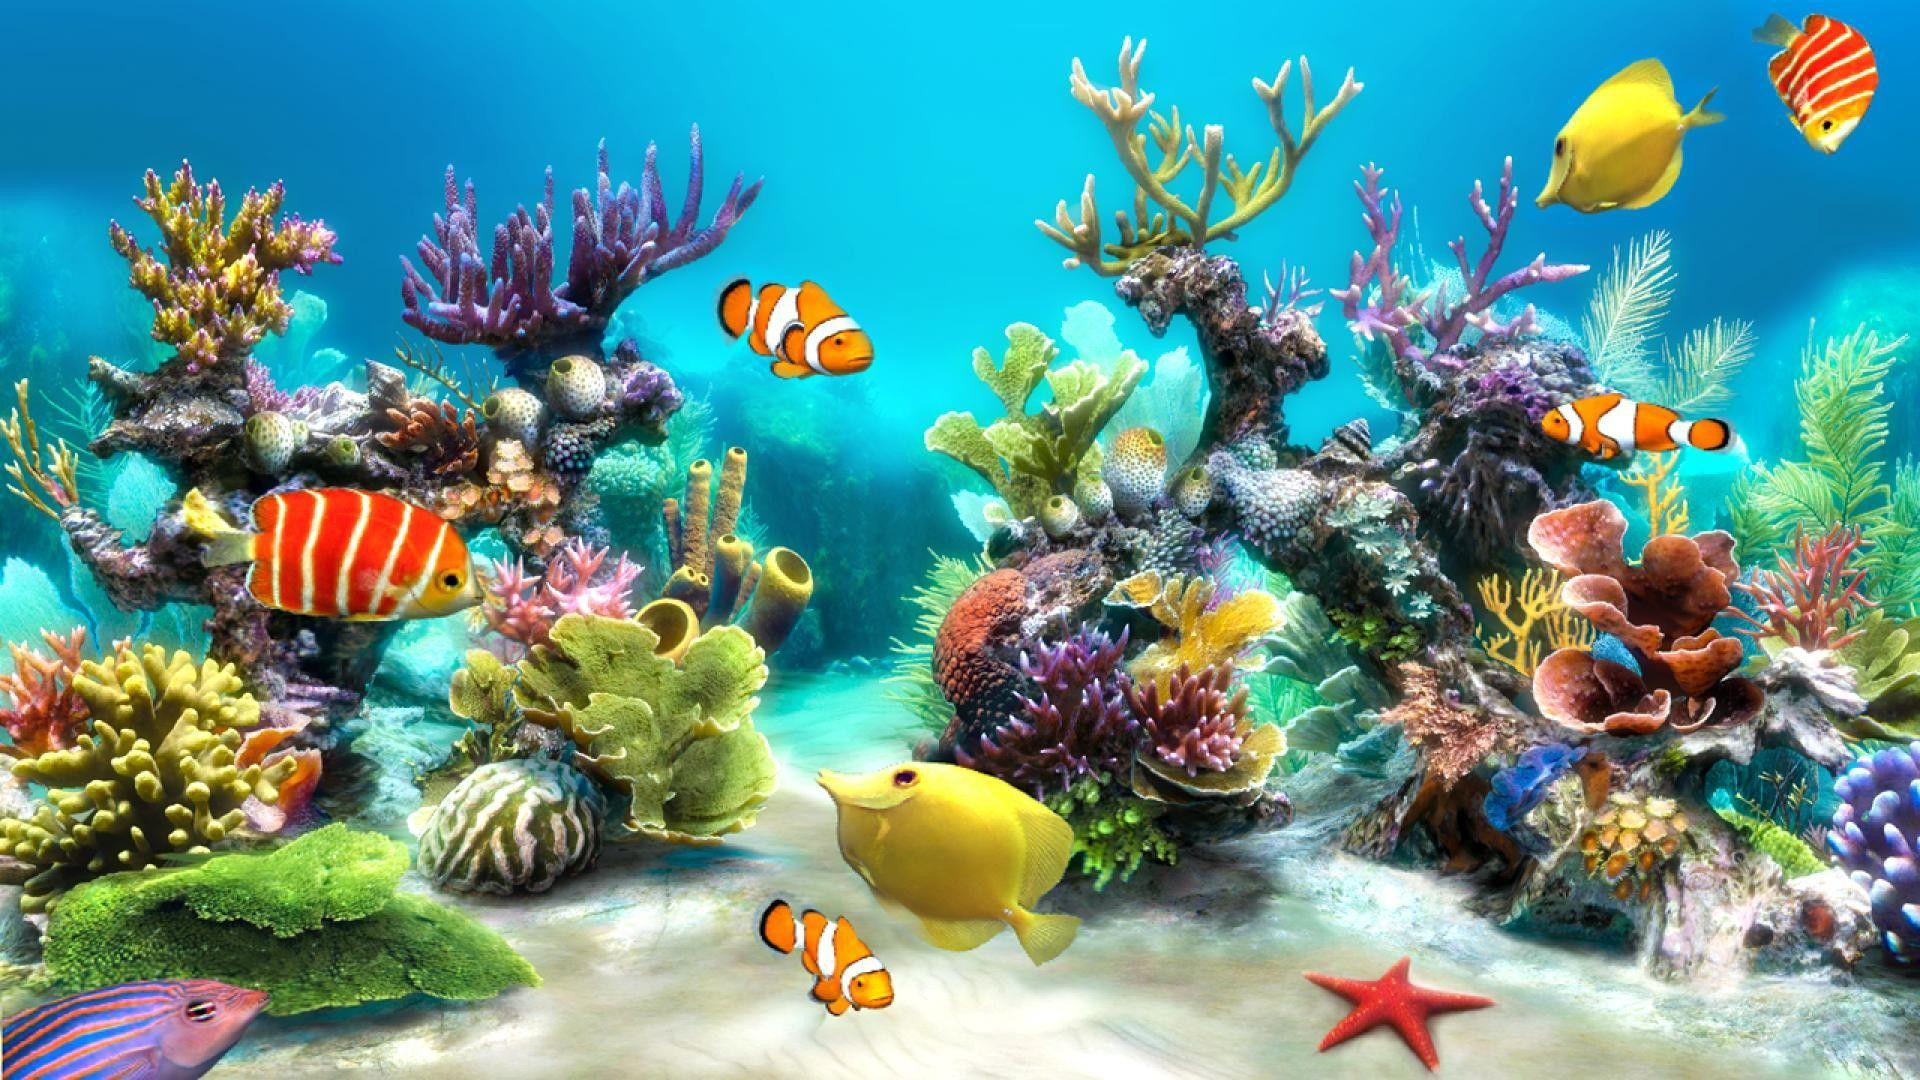 1920x1080 Wallpaper Wiki 3d Desktop Aquarium Wallpaper Pic Wpb004724 Aquarium Live Wallpaper Wallpaper Pc Live Wallpapers